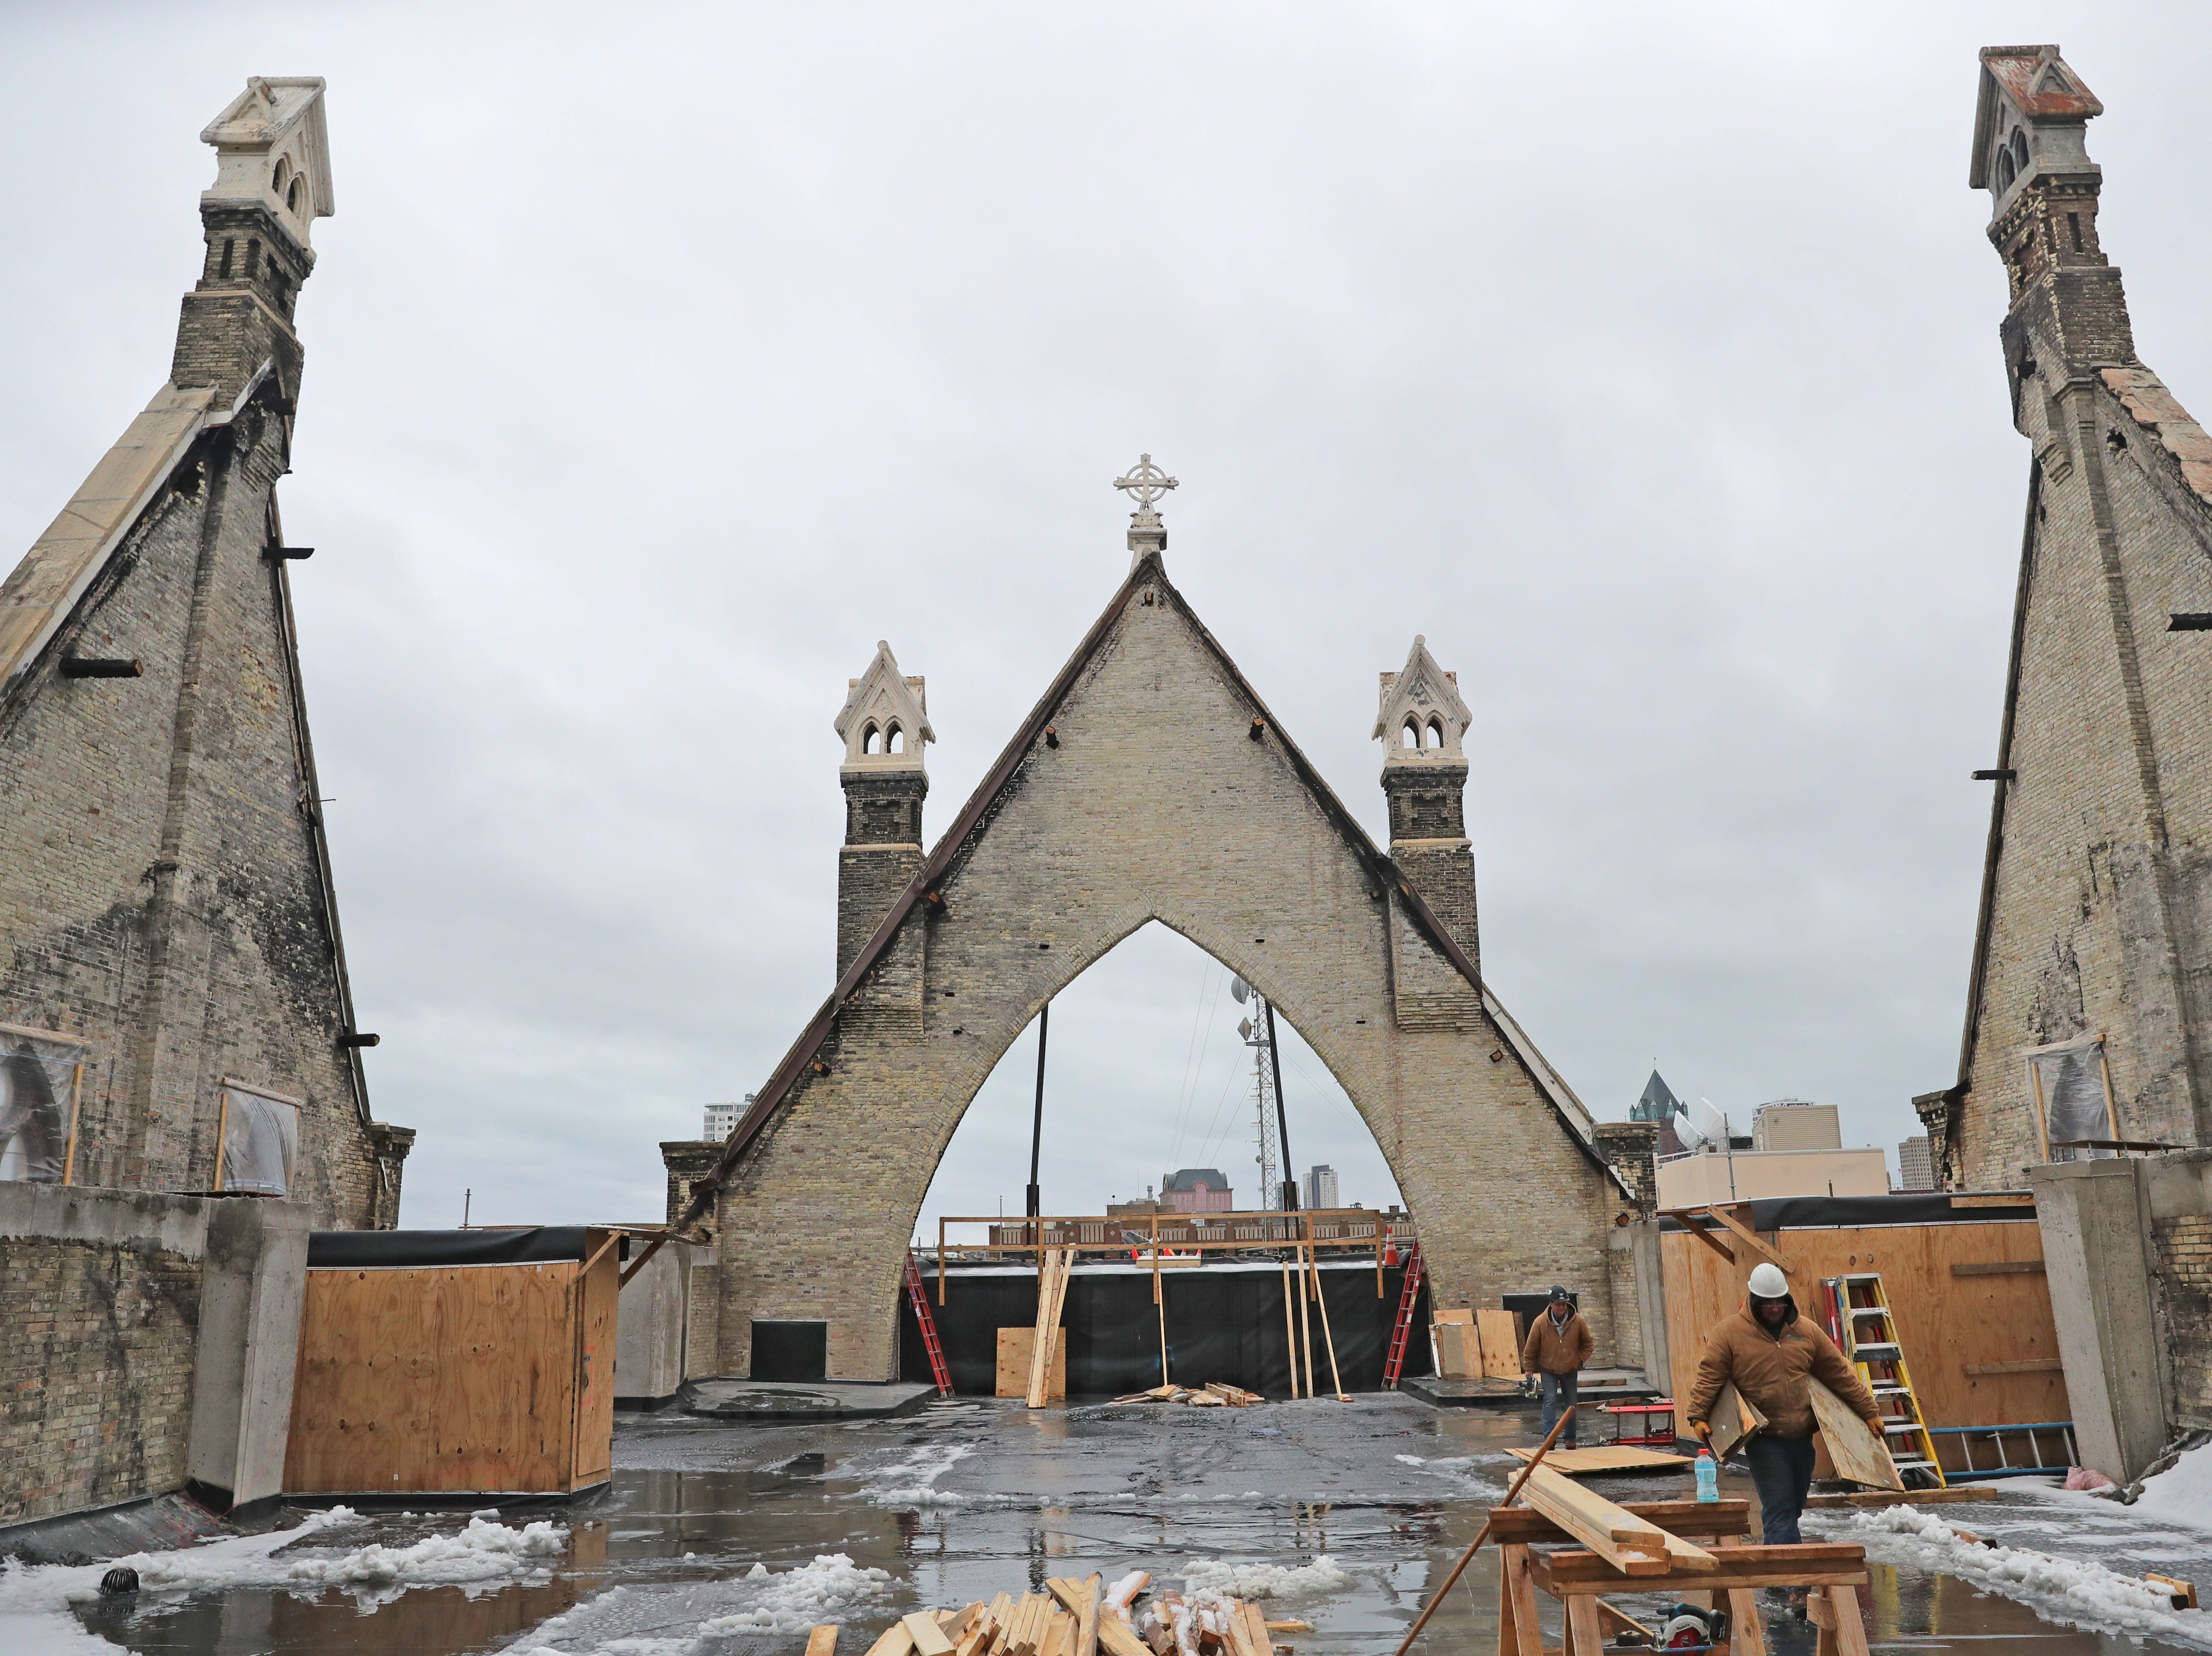 Work is done on the roof area at Trinity Evangelical Lutheran Church. While the exterior structure of the church is being rebuilt to look identical prior to the fire, the interior will be constructed with steel and reinforced concrete rather than wood framing as it formerly was.